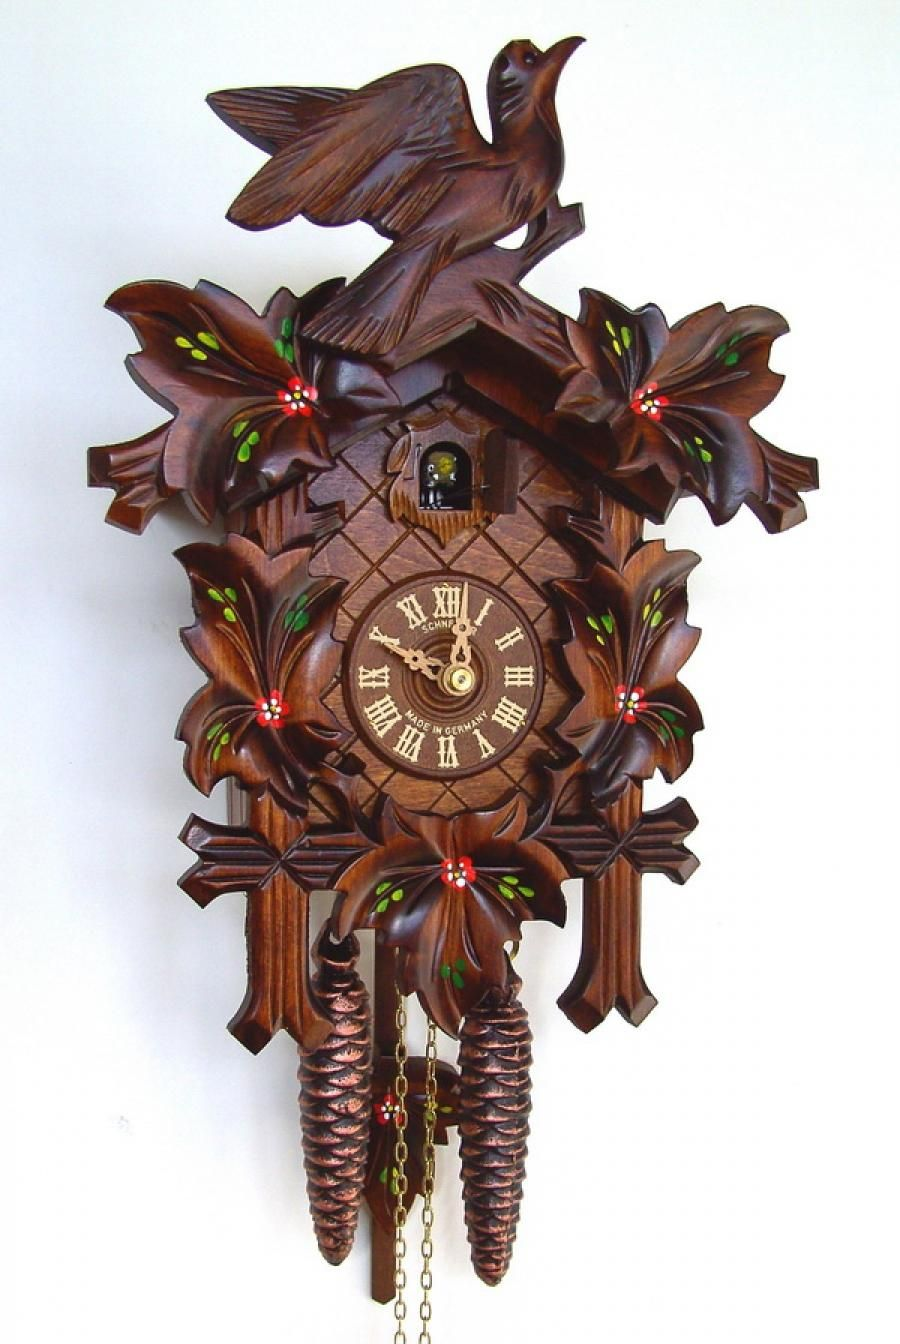 17in Birds Leaves 1 Day Traditional German Black Forest Clock By Schneider Nsc3665 Cuckoo Clock Clock Forest Clock